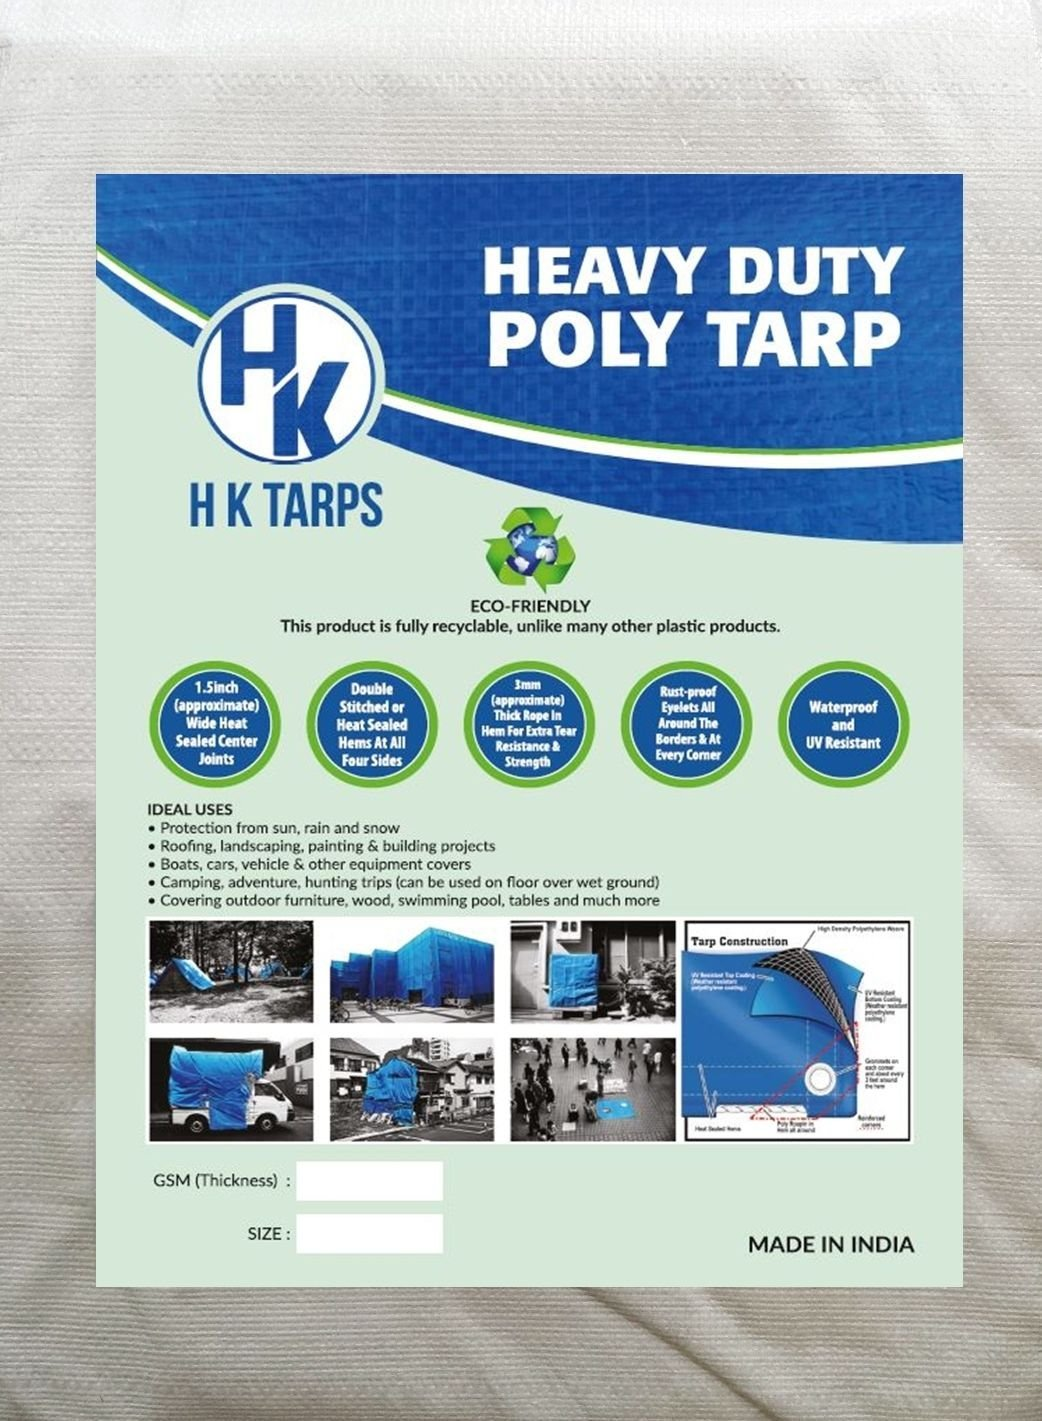 Light Duty Reinforced Tarpaulin All Purpose Canopy Poly Tarps 3Oz 6 Mil - White/Black (30' X 60' Feet) by H K Tarps